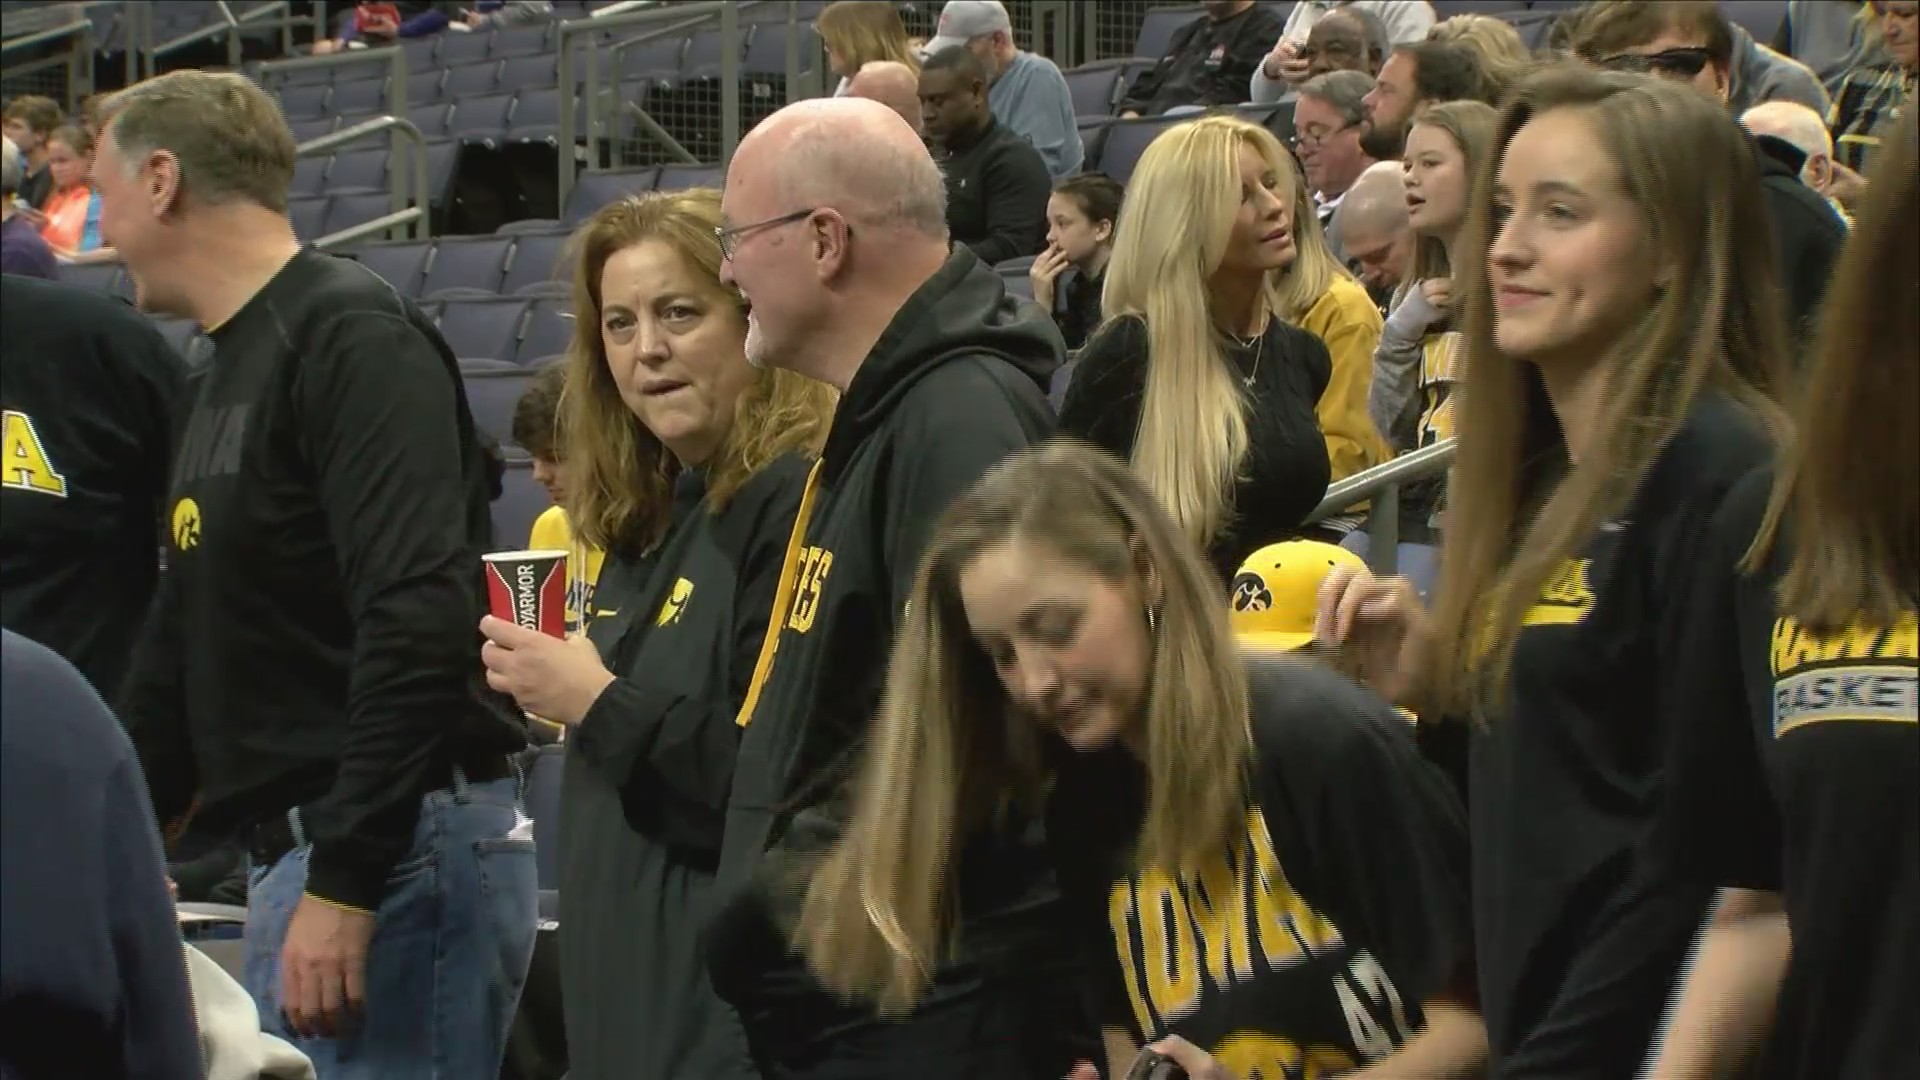 Nicholas Baer family support at Iowa.